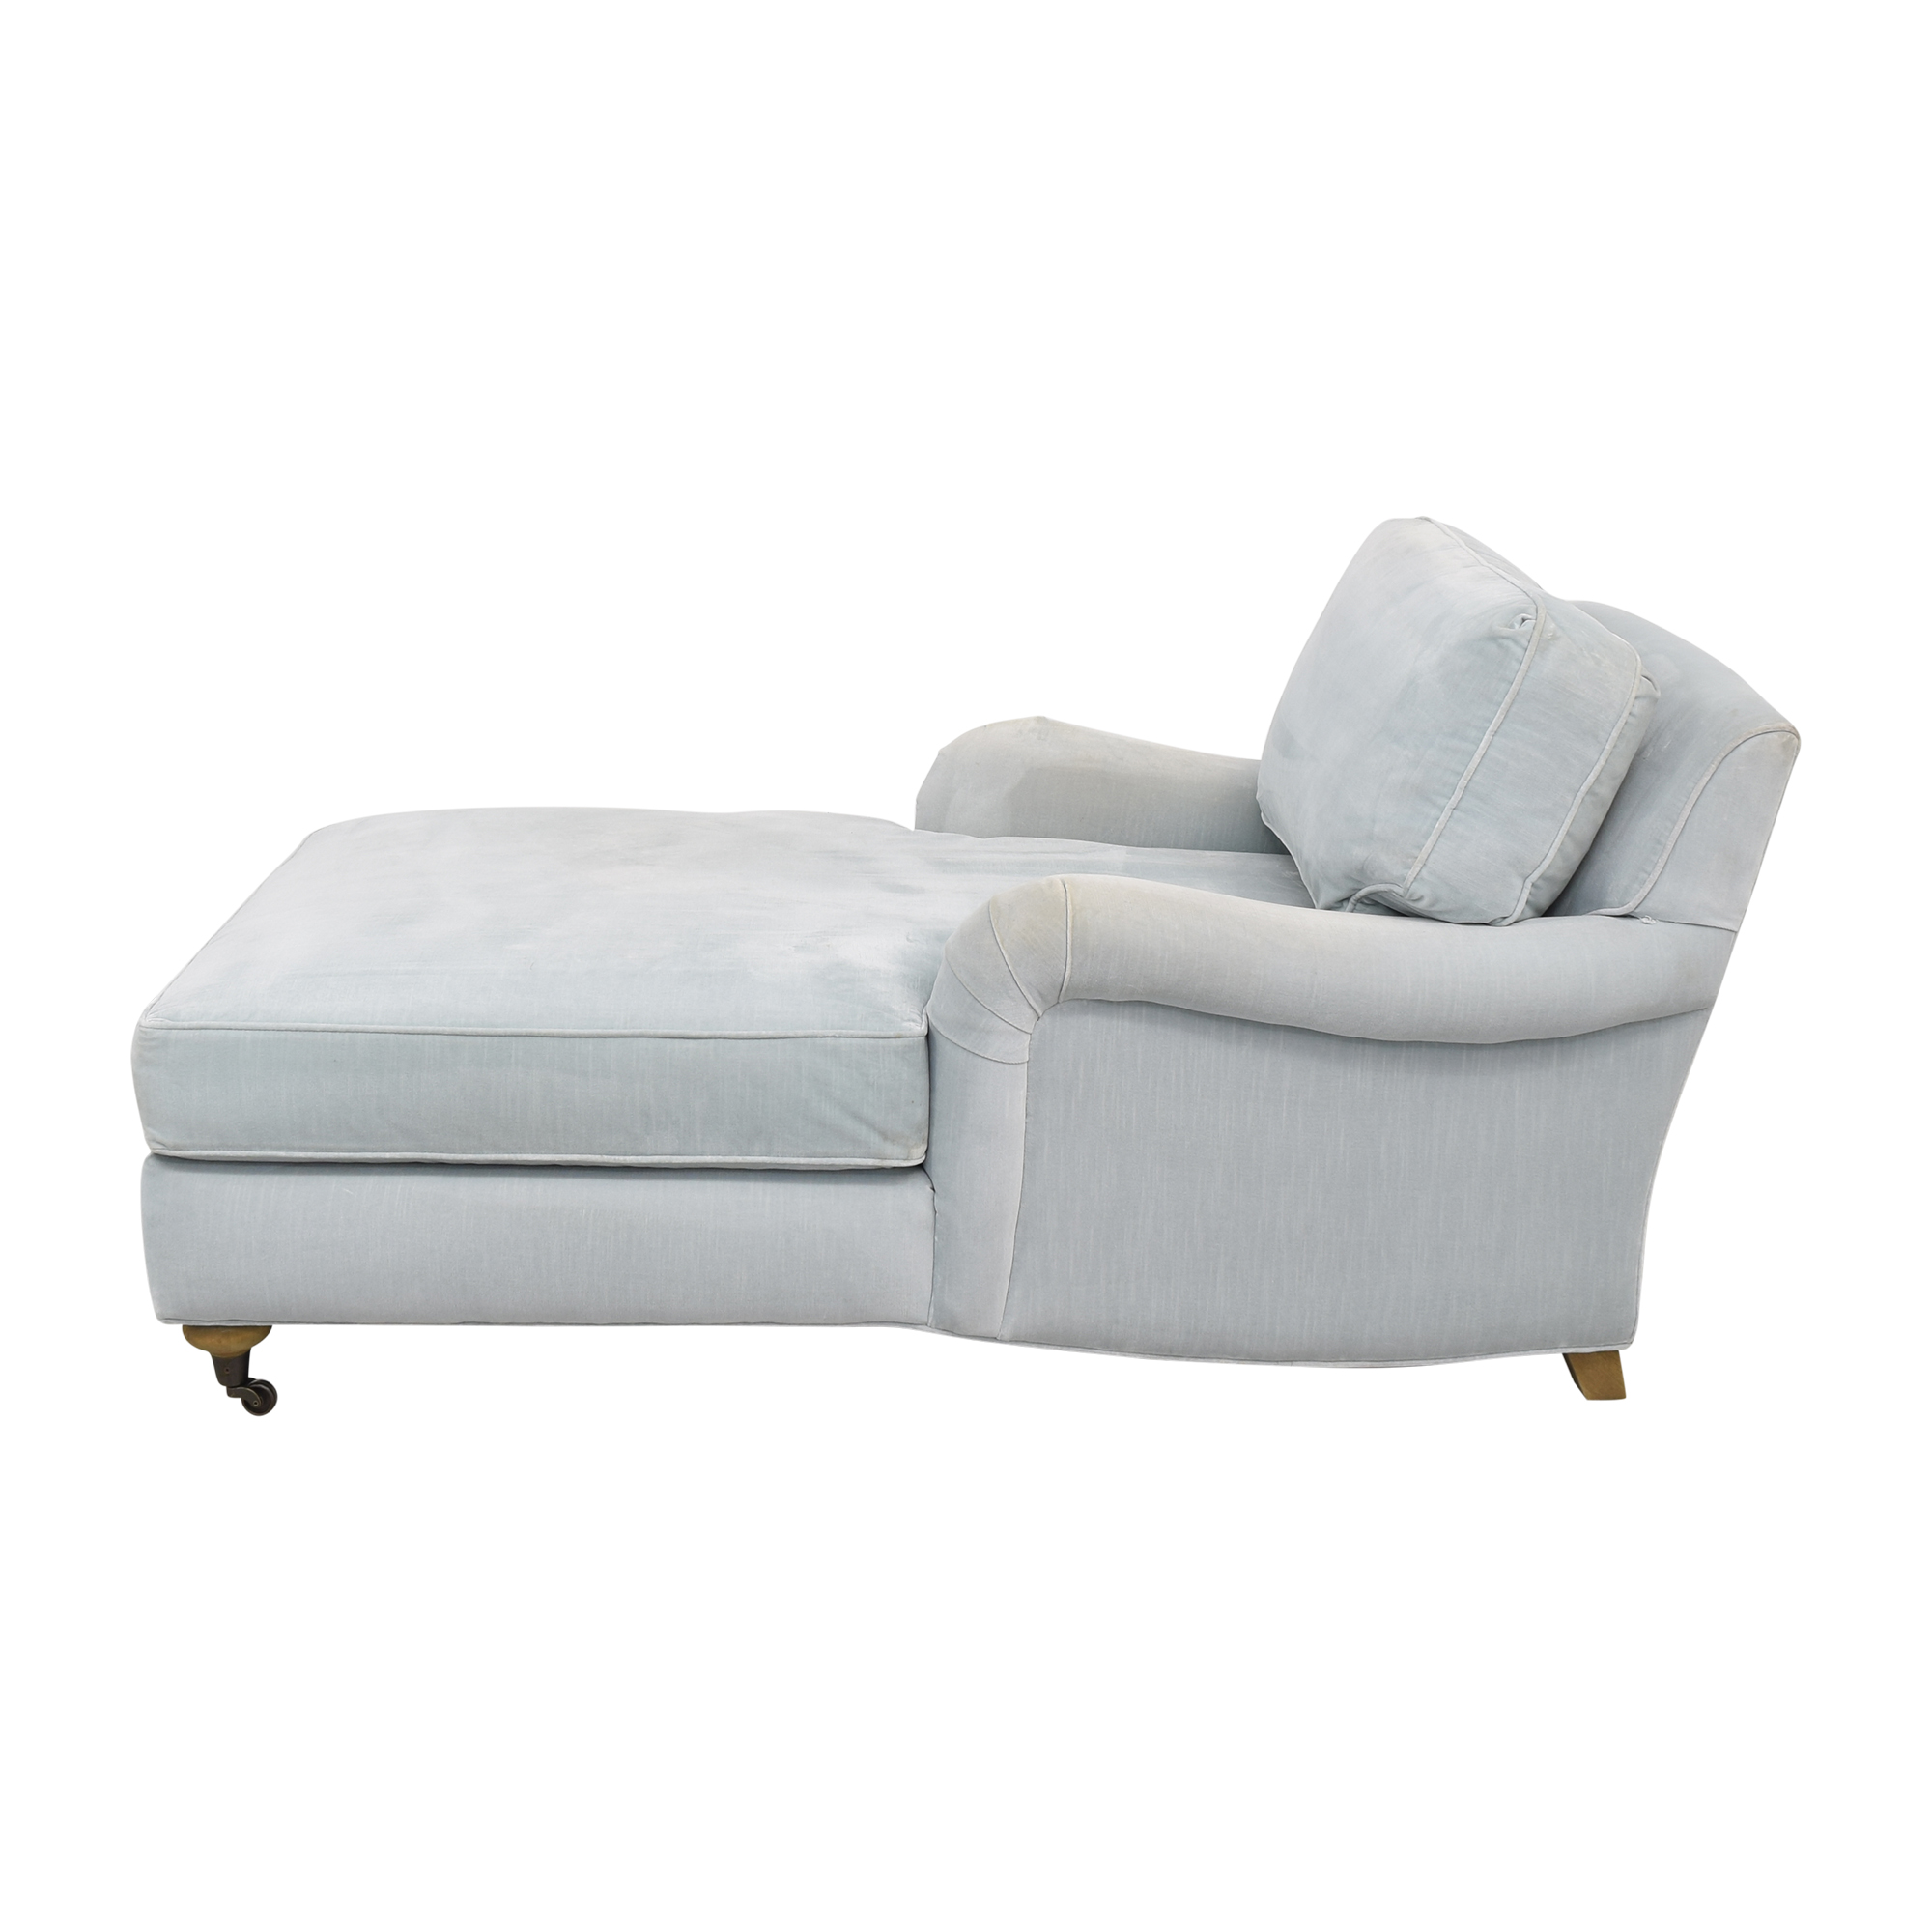 Restoration Hardware Restoration Hardware English Roll Arm Chaise light blue